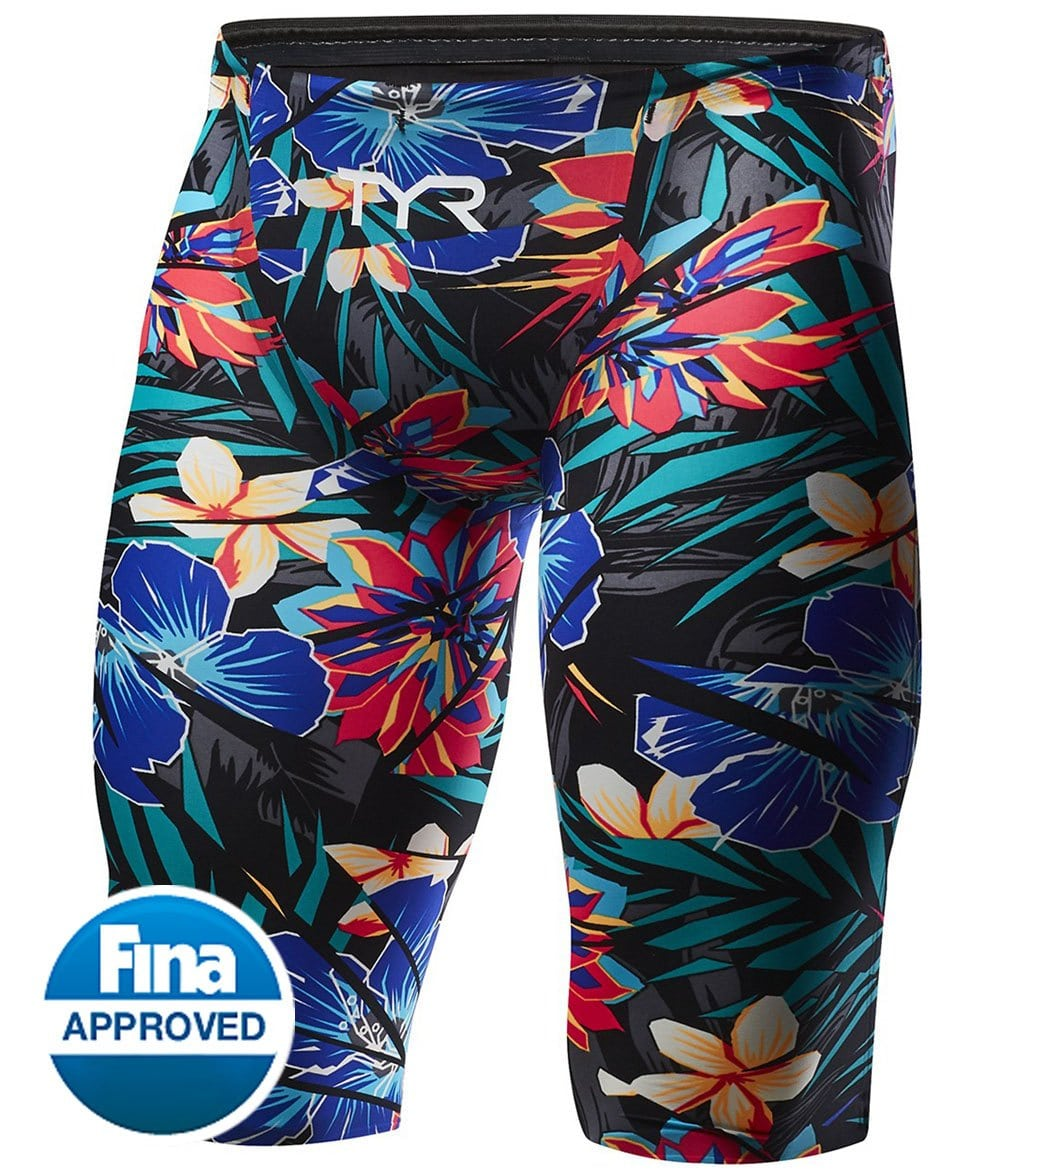 c4feff65b57 TYR Men's Limited Edition Lava Avictor High Short Jammer Tech Suit Swimsuit  at SwimOutlet.com - Free Shipping